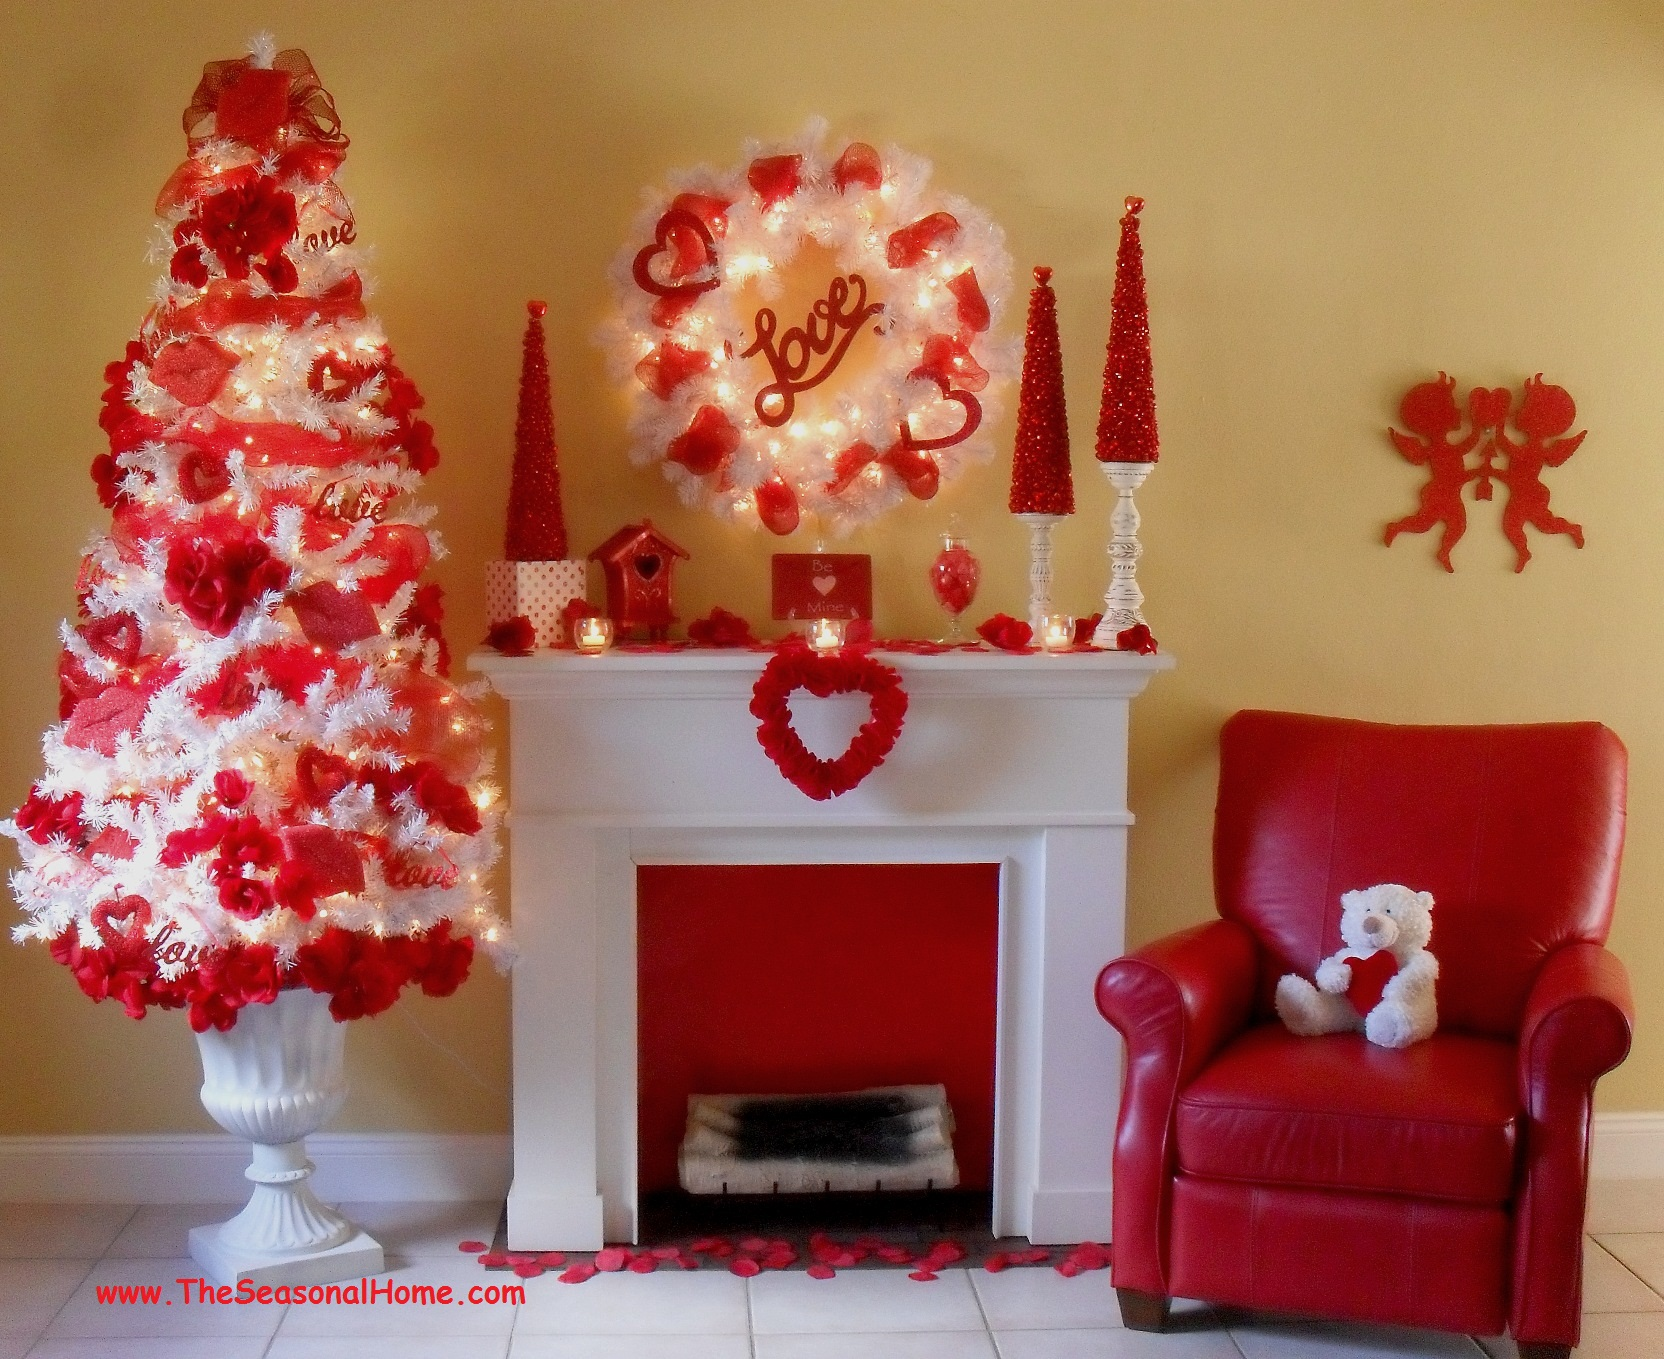 Cute valentines day home decorating idea dmards for Home decorations for valentine s day